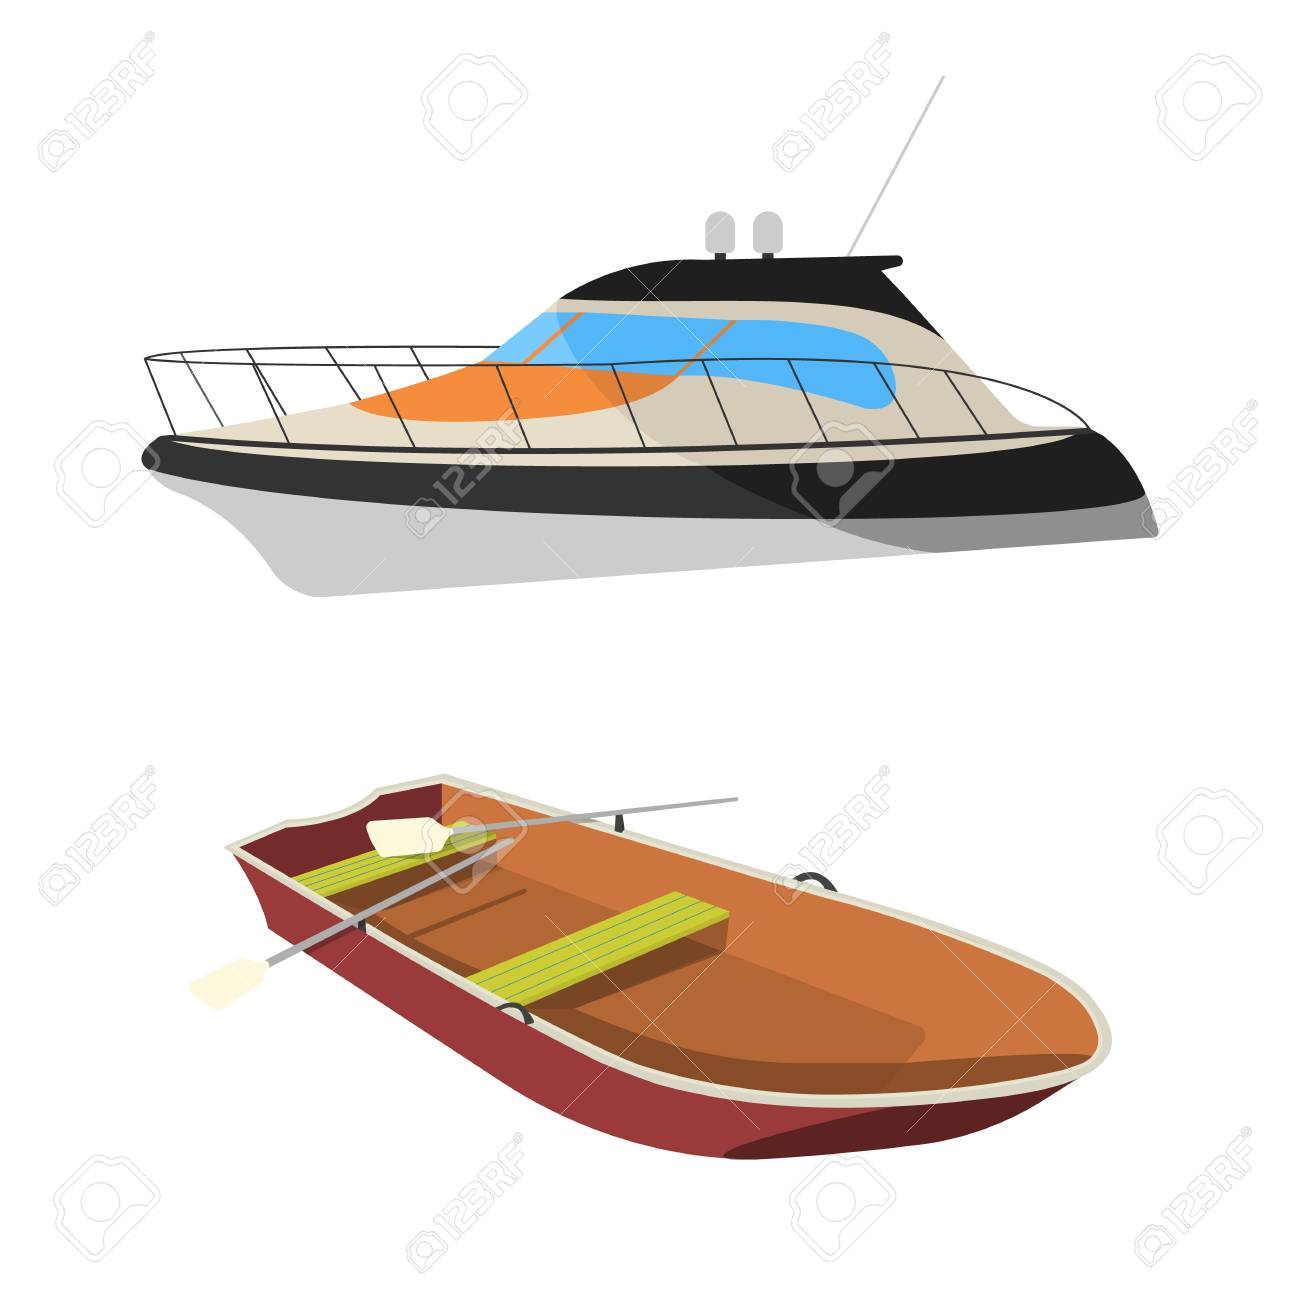 graphic download X free clip art. Yacht clipart bote